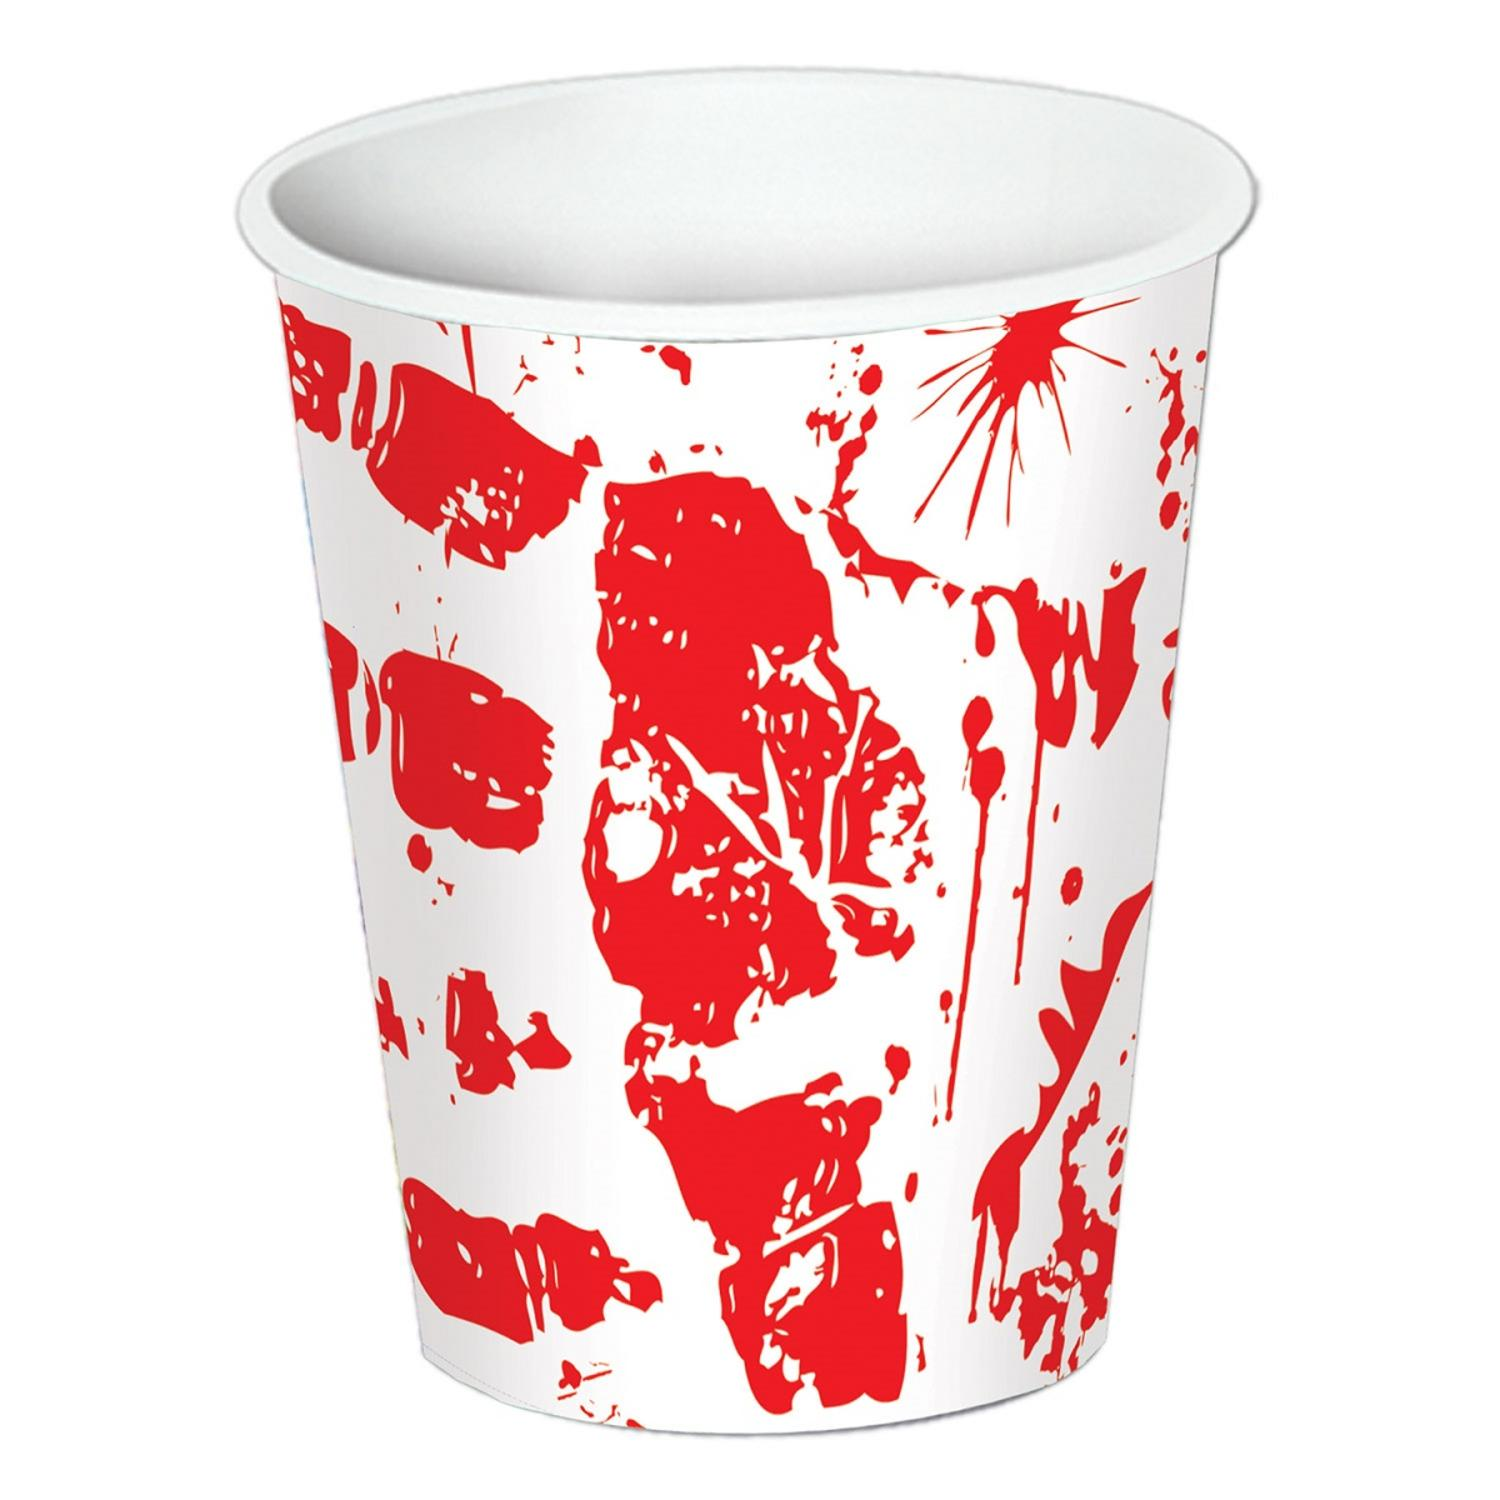 Club Pack of 96 P.S.I. Bloody Handprint Disposable Paper Hot and Cold Drinking Party Cups 9 Oz